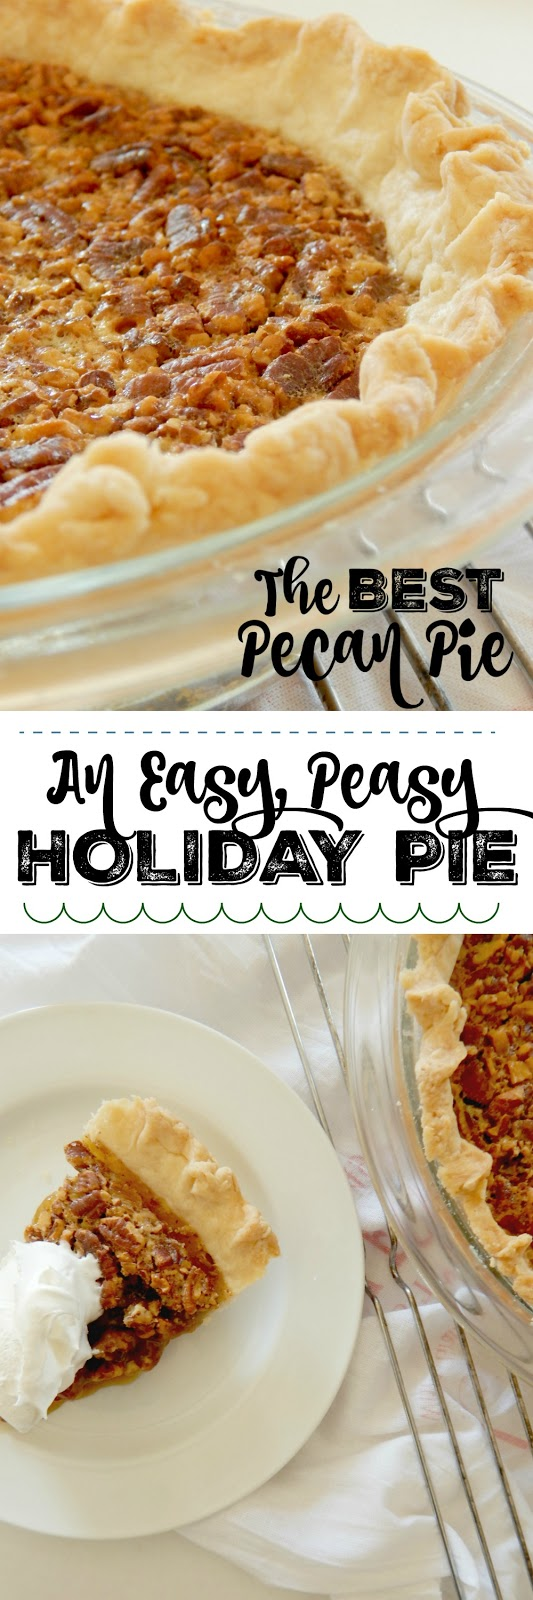 The BEST Pecan Pie...this easy pie comes together in under an hour and tastes incredible!  A sweet custard filling, studded with salty, crunchy pecans.  Perfect pie for the holidays! (sweetandsavoryfood.com)